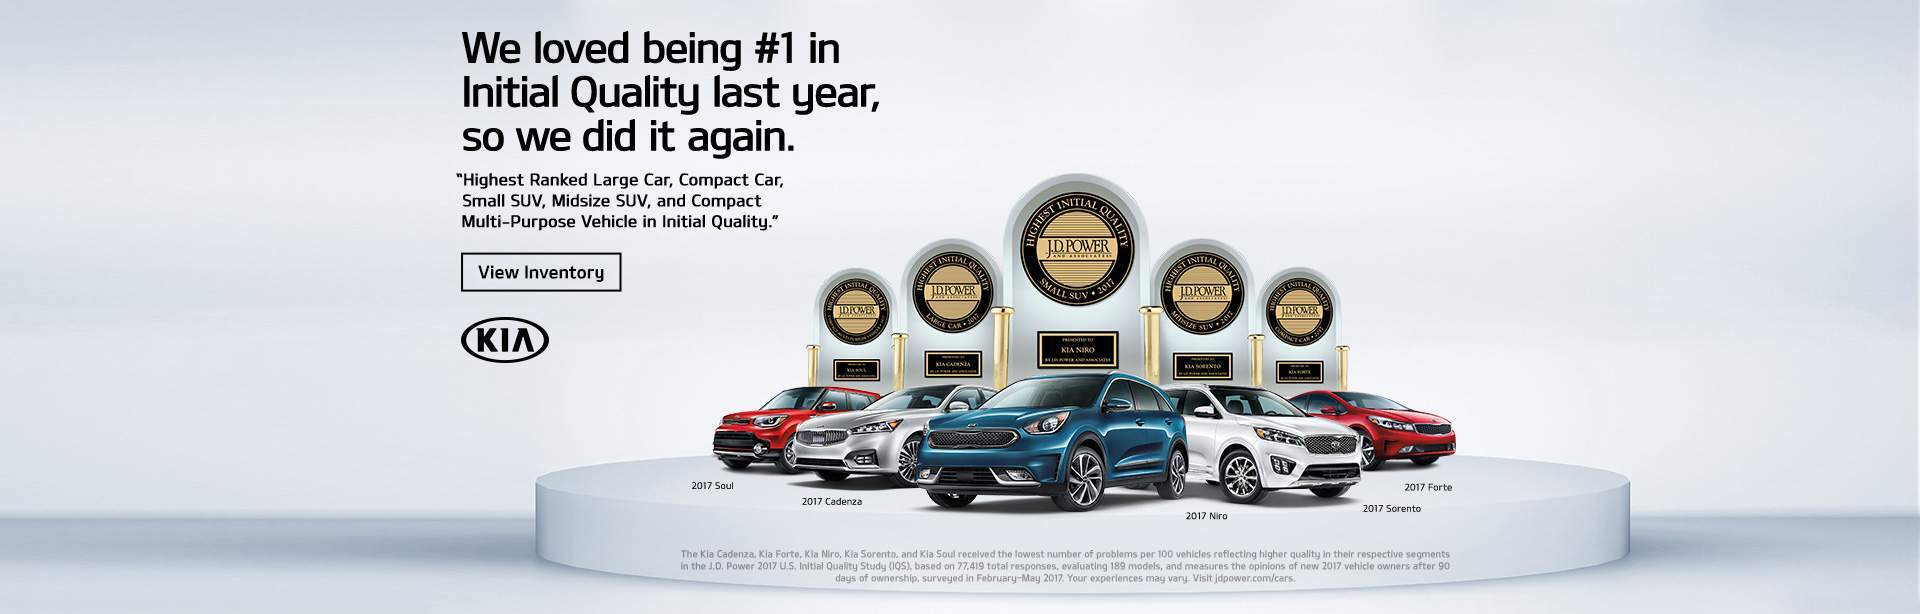 kia s ca me america of dealership valley disclaimer in best simi value near dealerships first